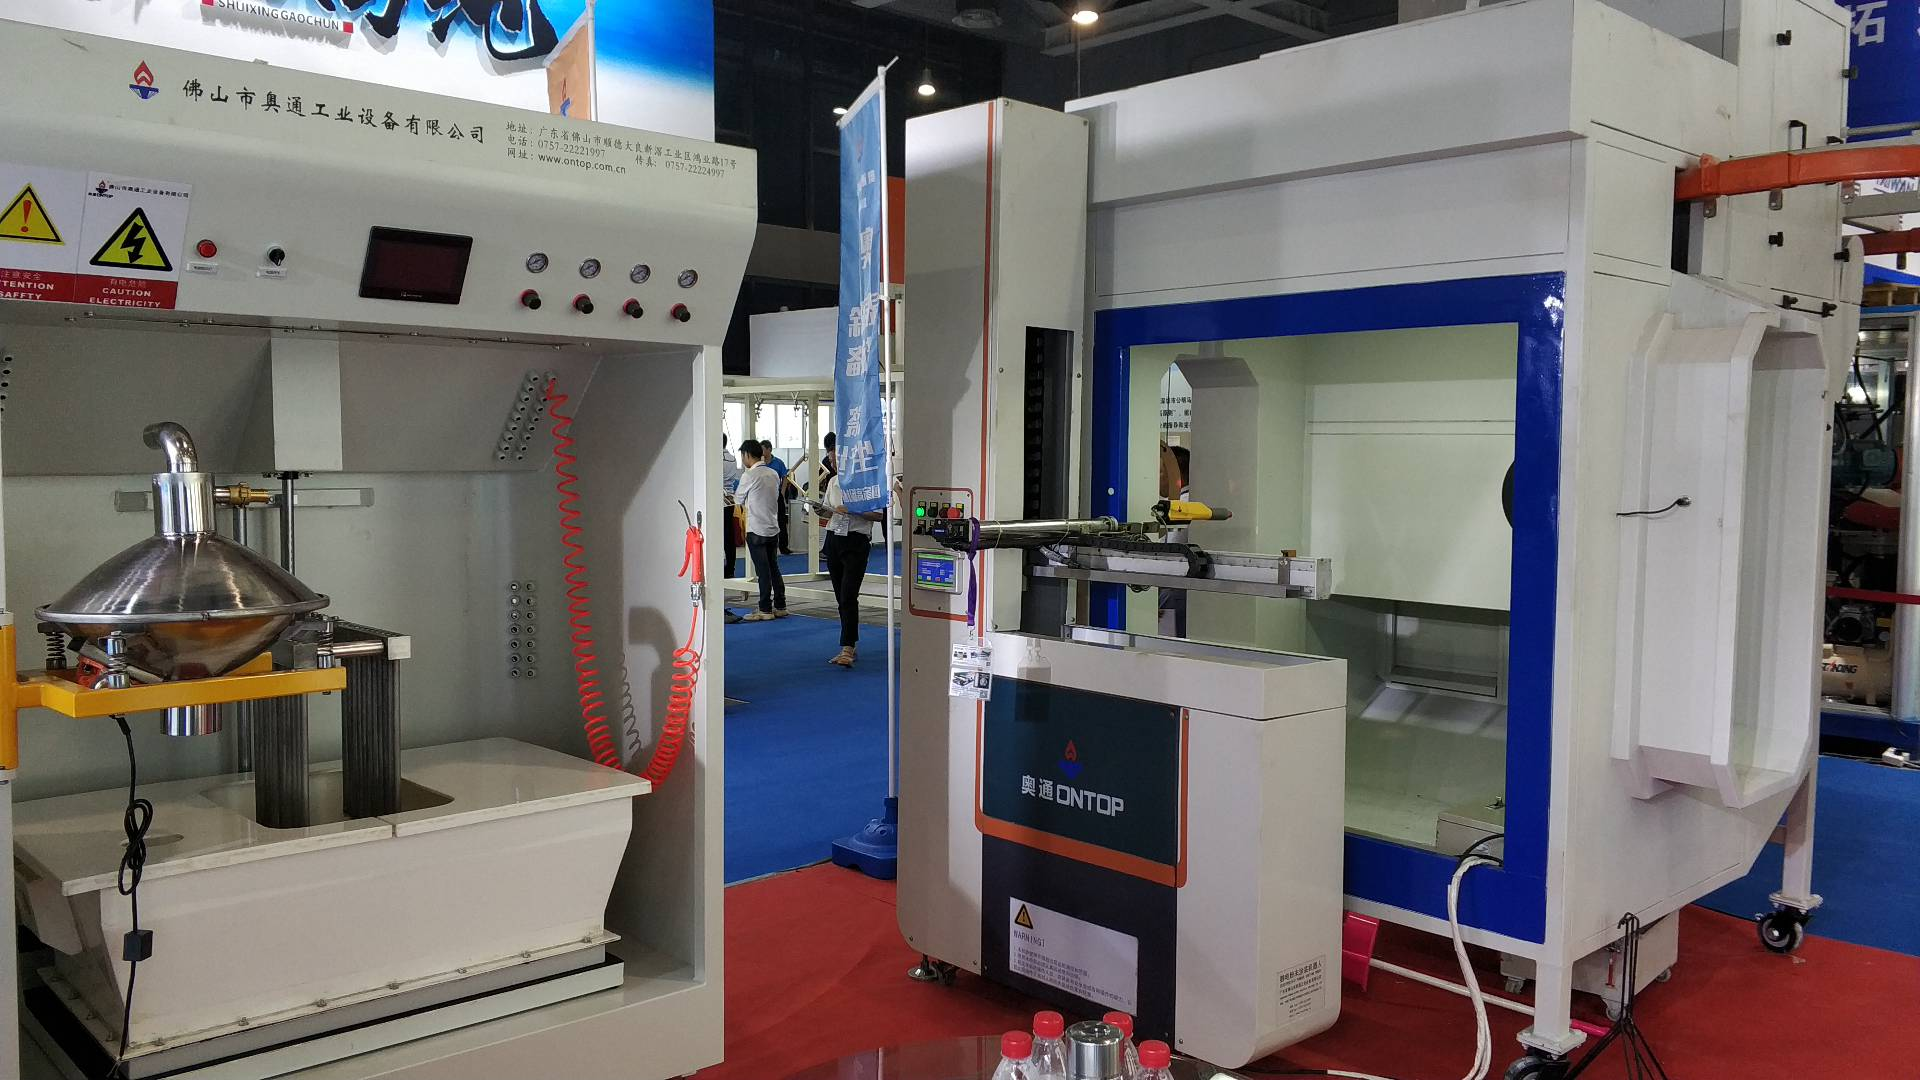 ONTOP company join The 13TH Guangzhou (China) International Surface Finishing, Electroplating and Coating Exhibition.